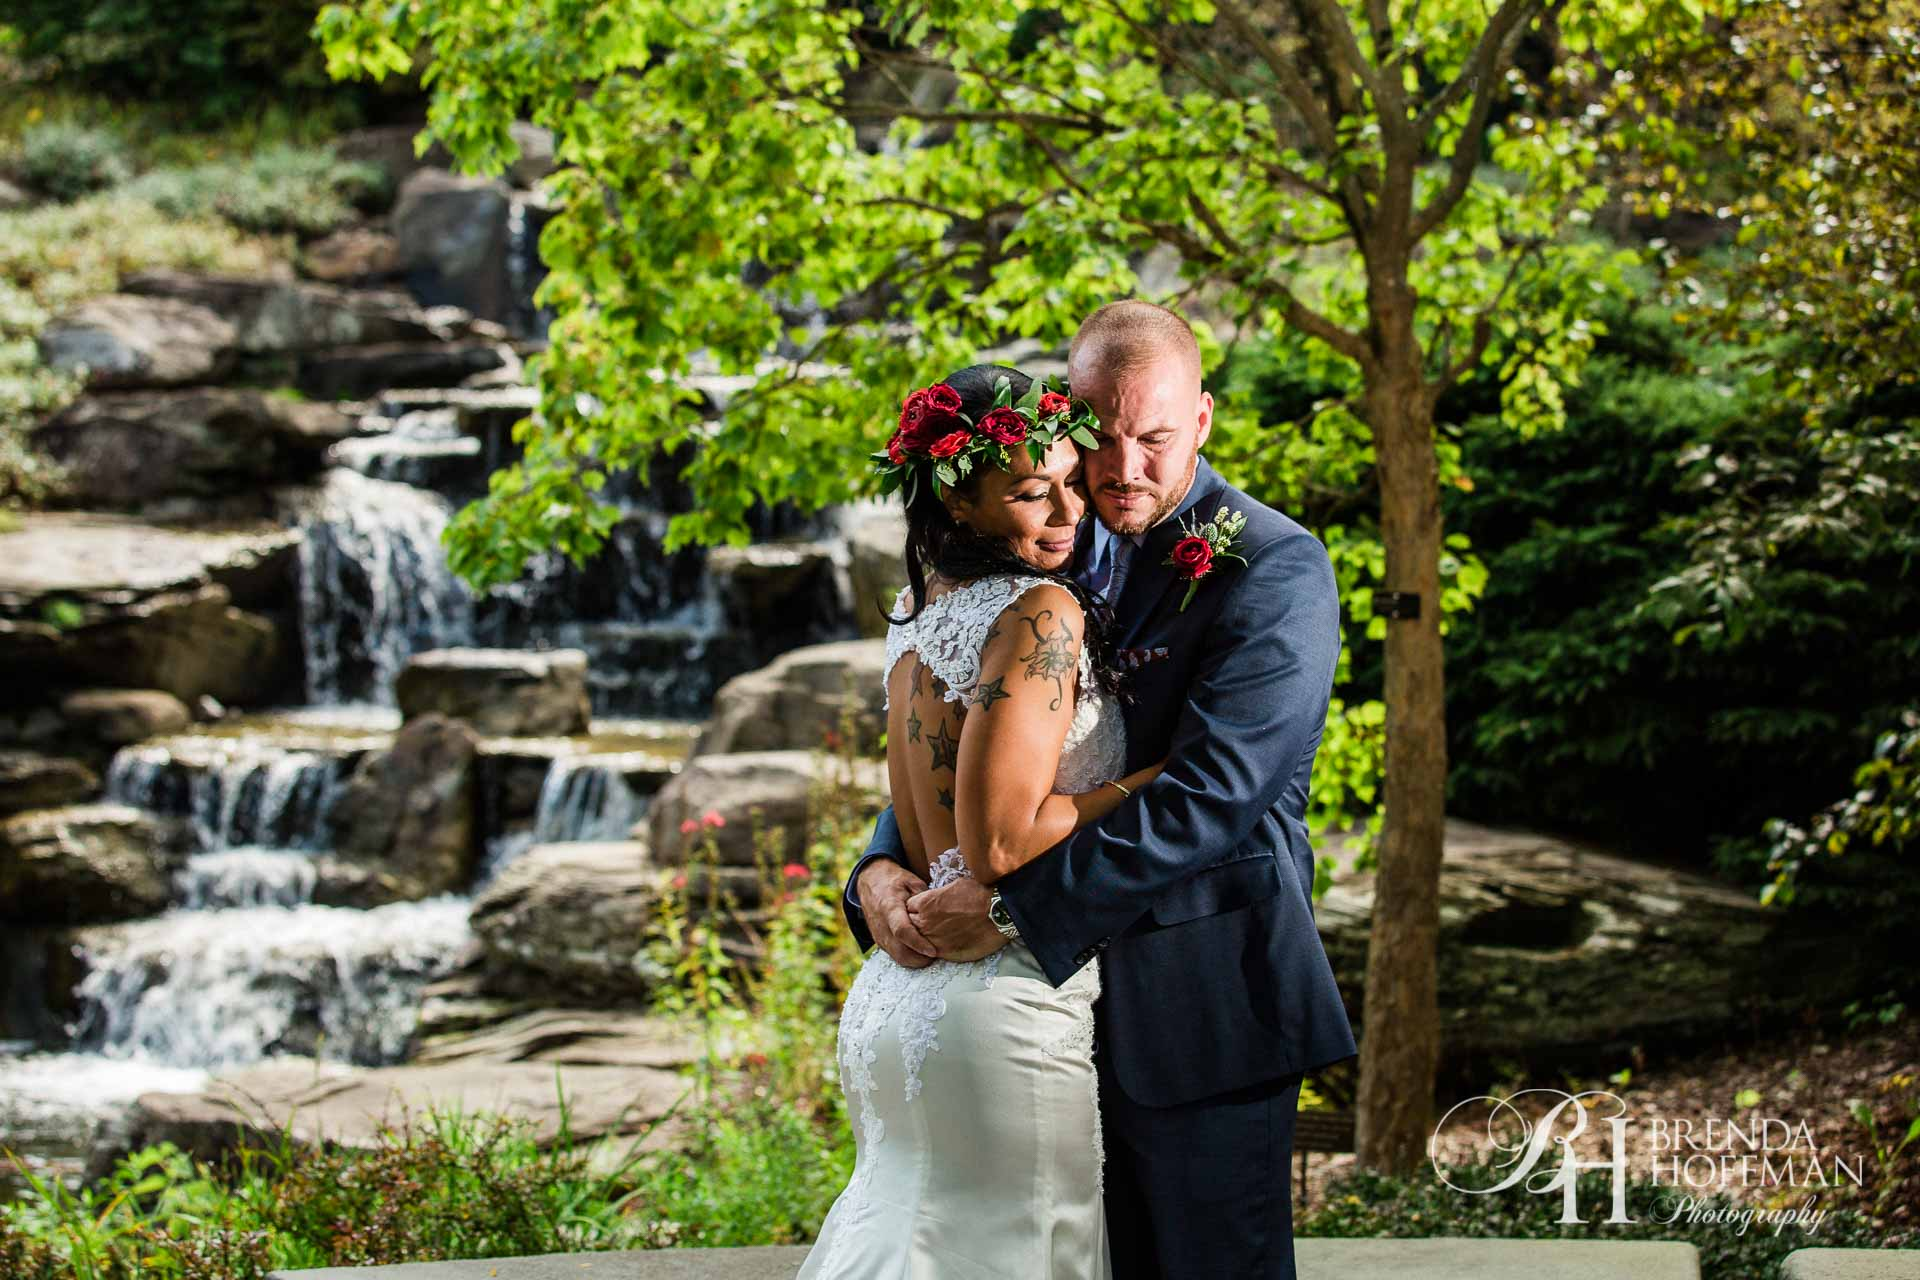 Frederik Meijer Gardens BOB Eve Nightclub Wedding 09